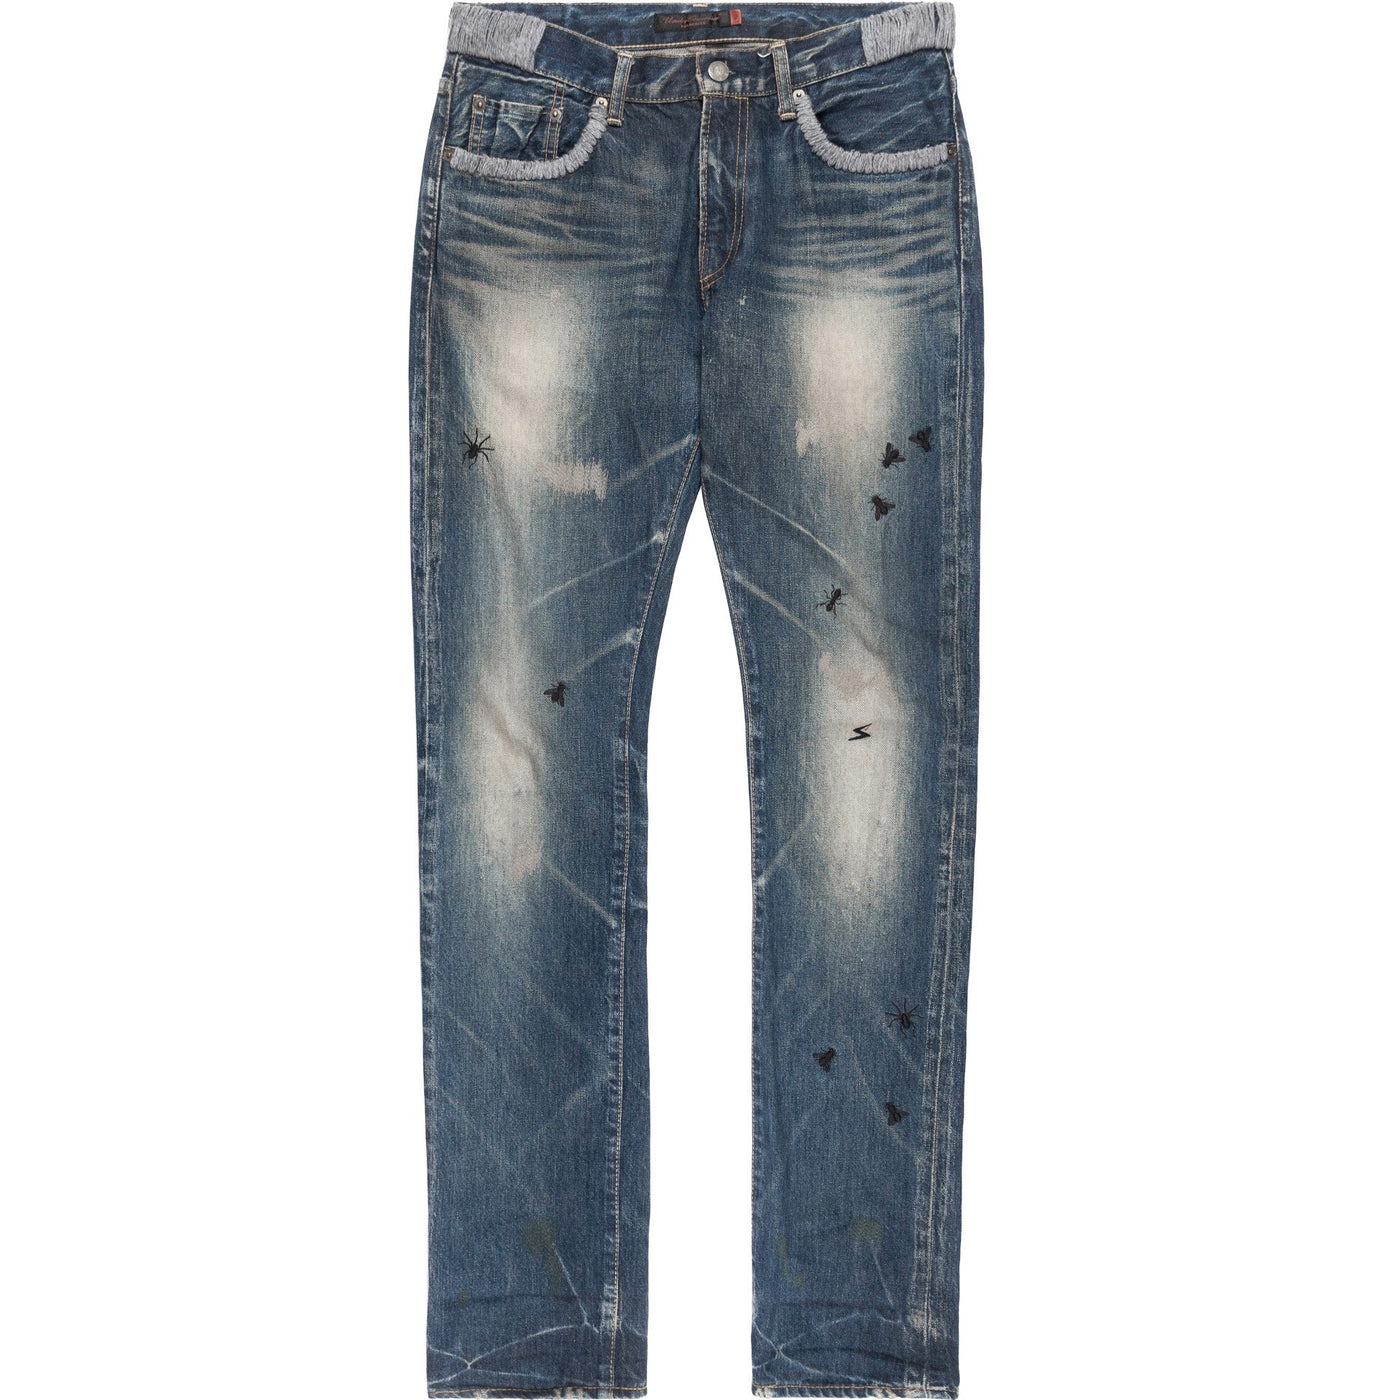 Undercover Insect Jeans - AW06